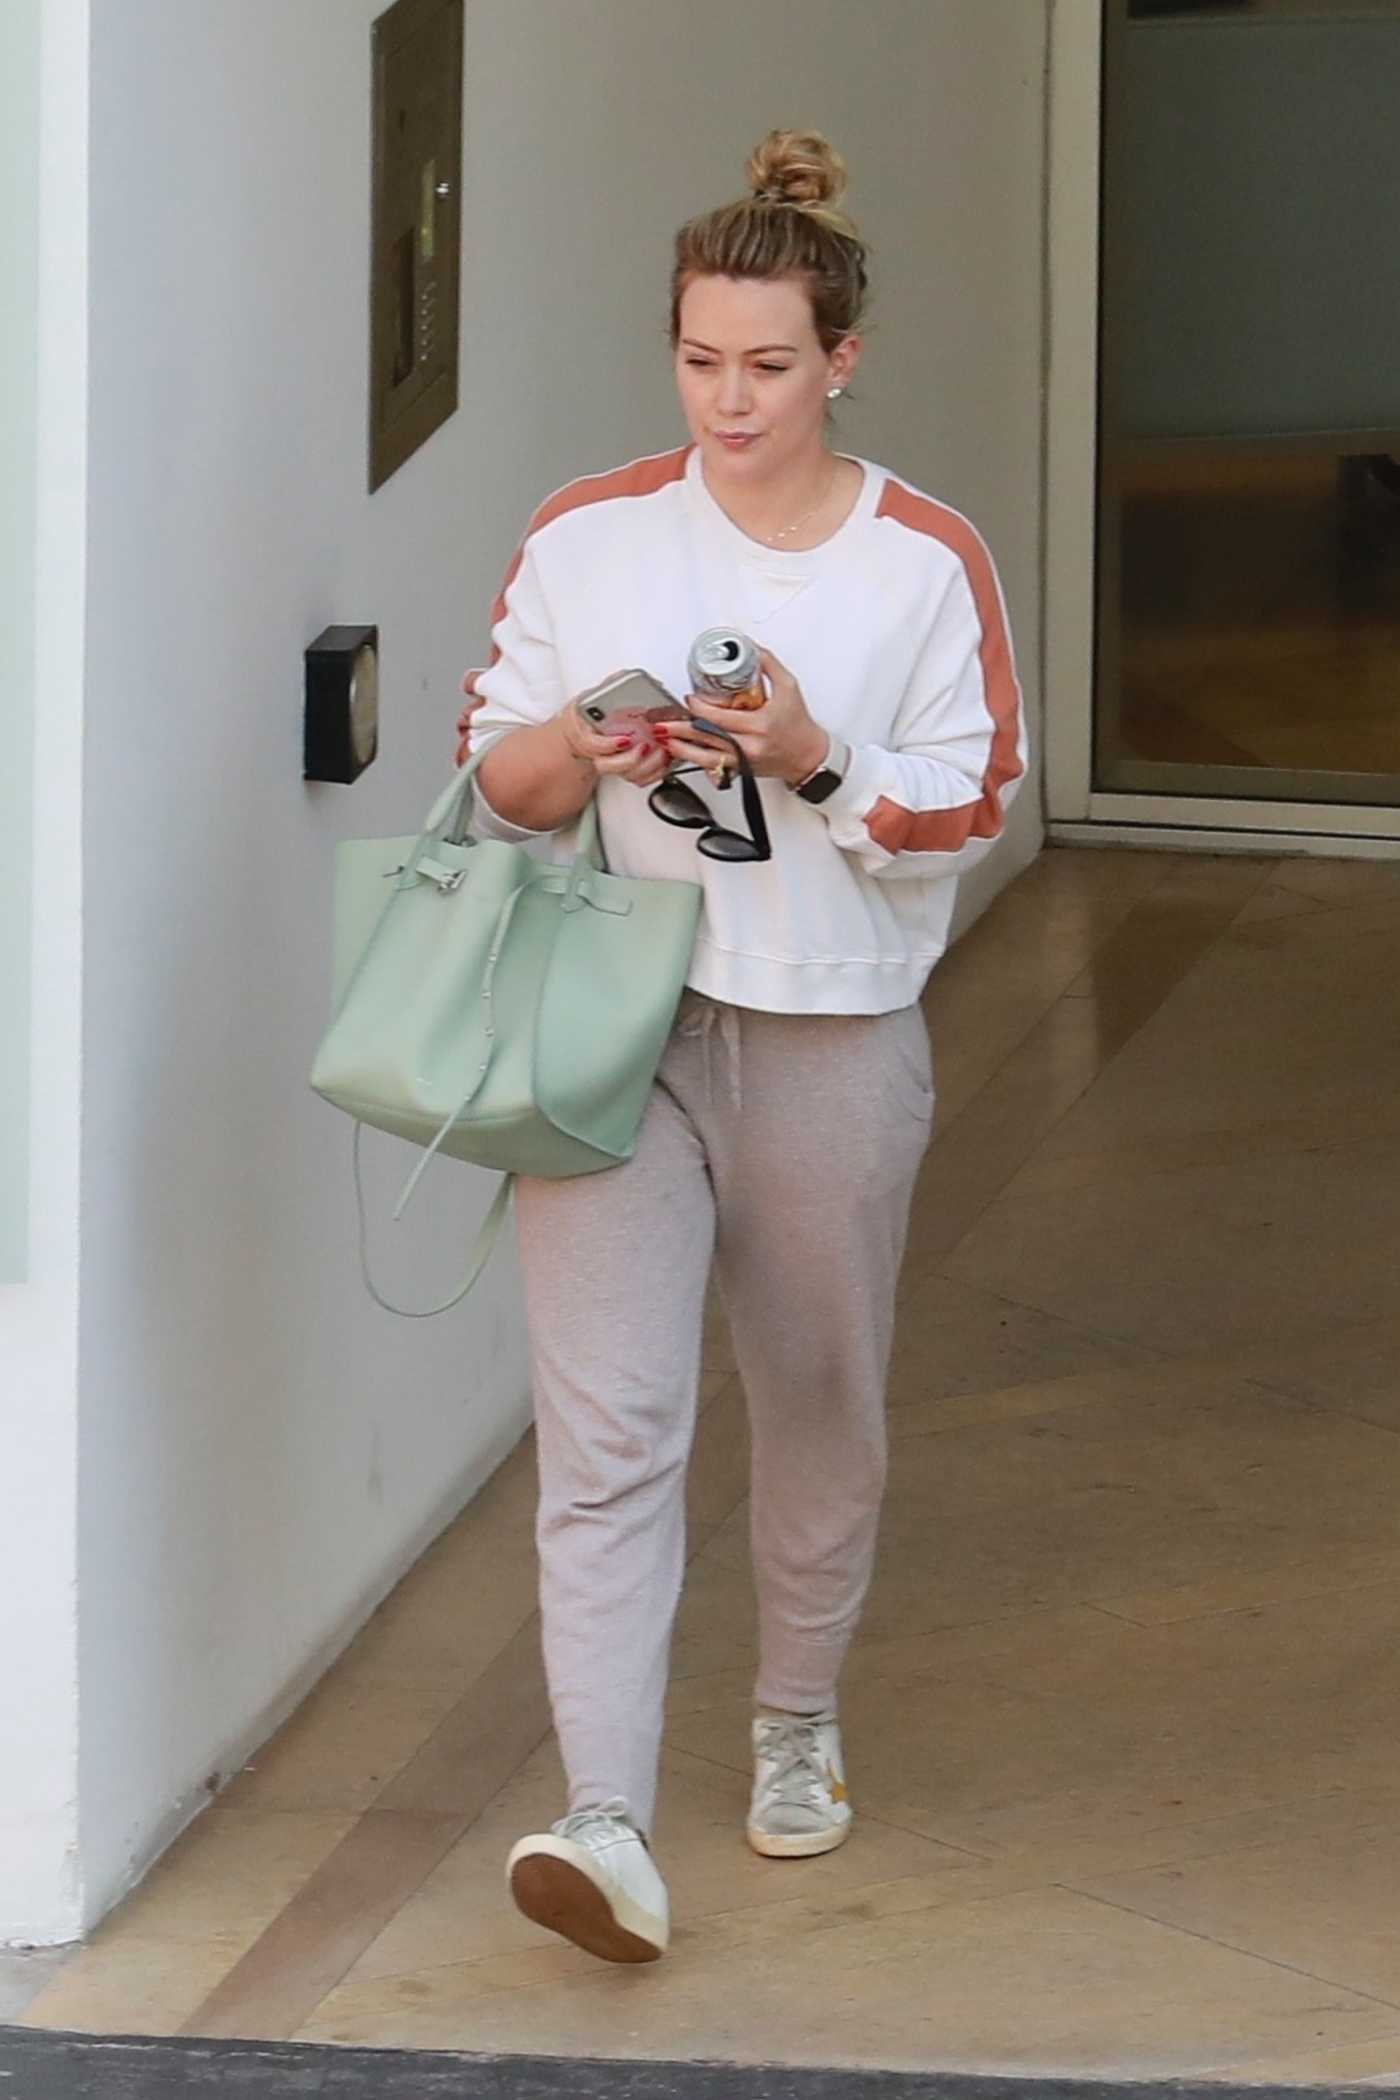 Hilary Duff in a Beige Sweatpants Arrives to a Medical Building in Beverly Hills 07/09/2019